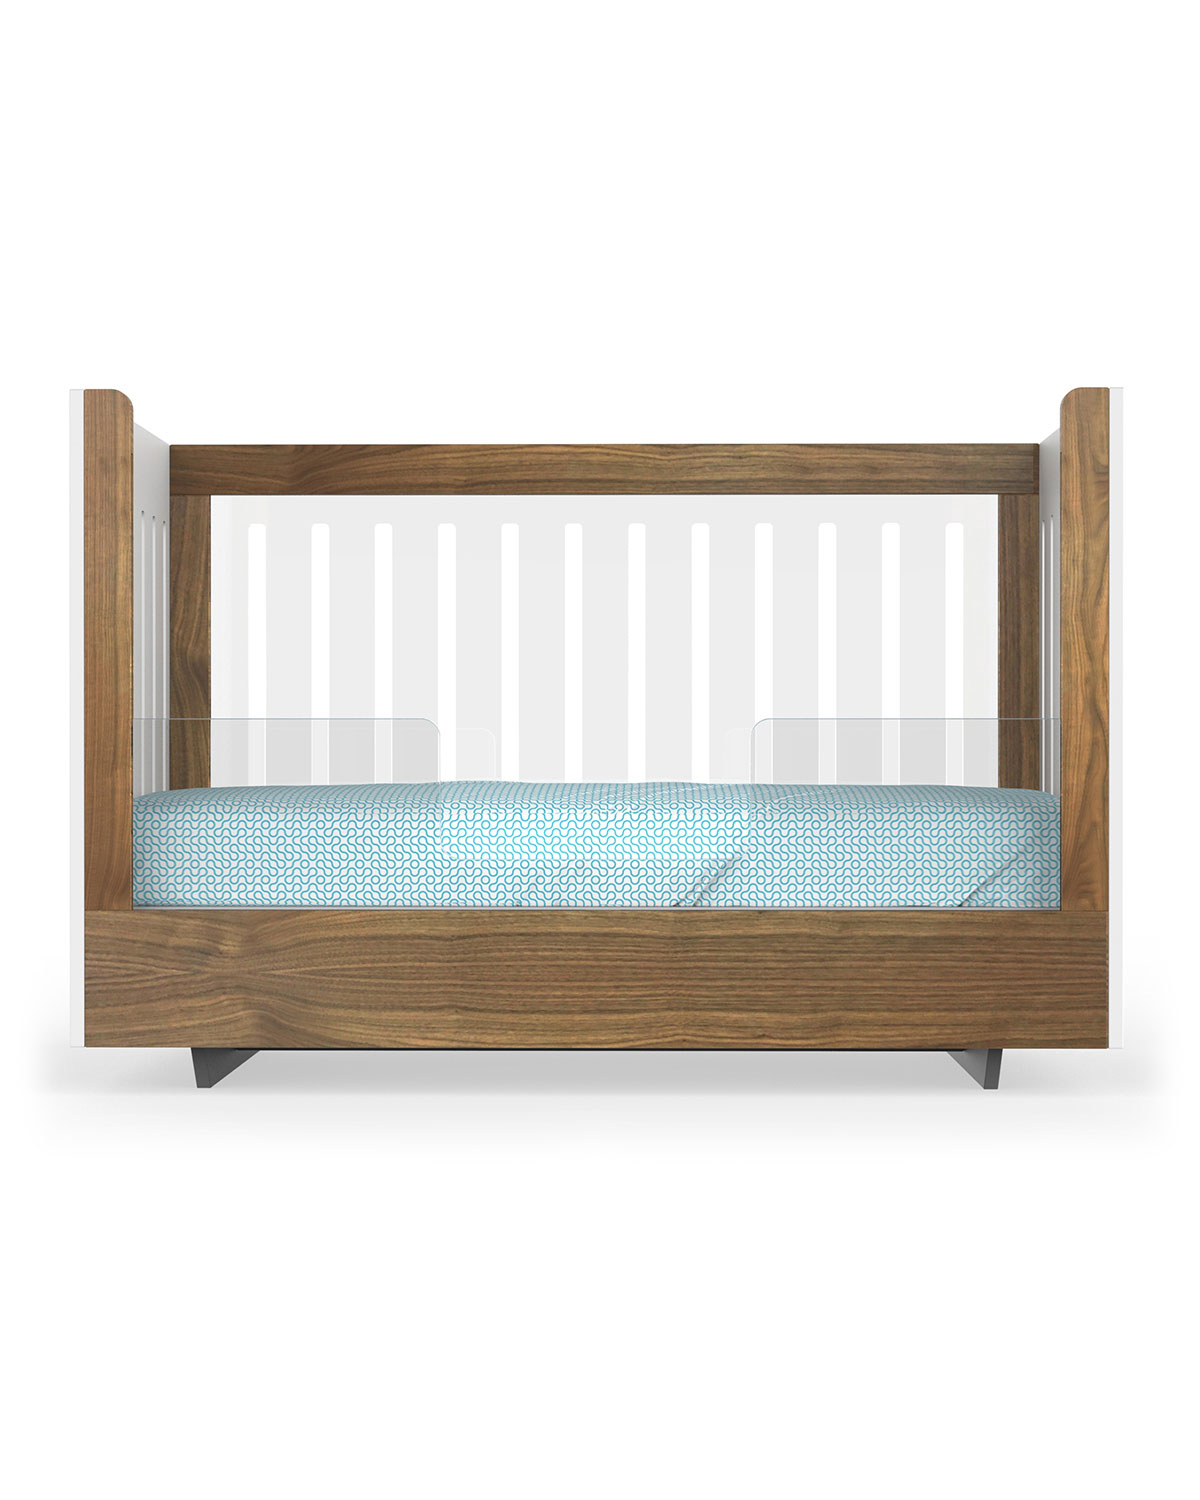 Spot On Square Roh Crib Conversion Kit, Walnut/Acrylic